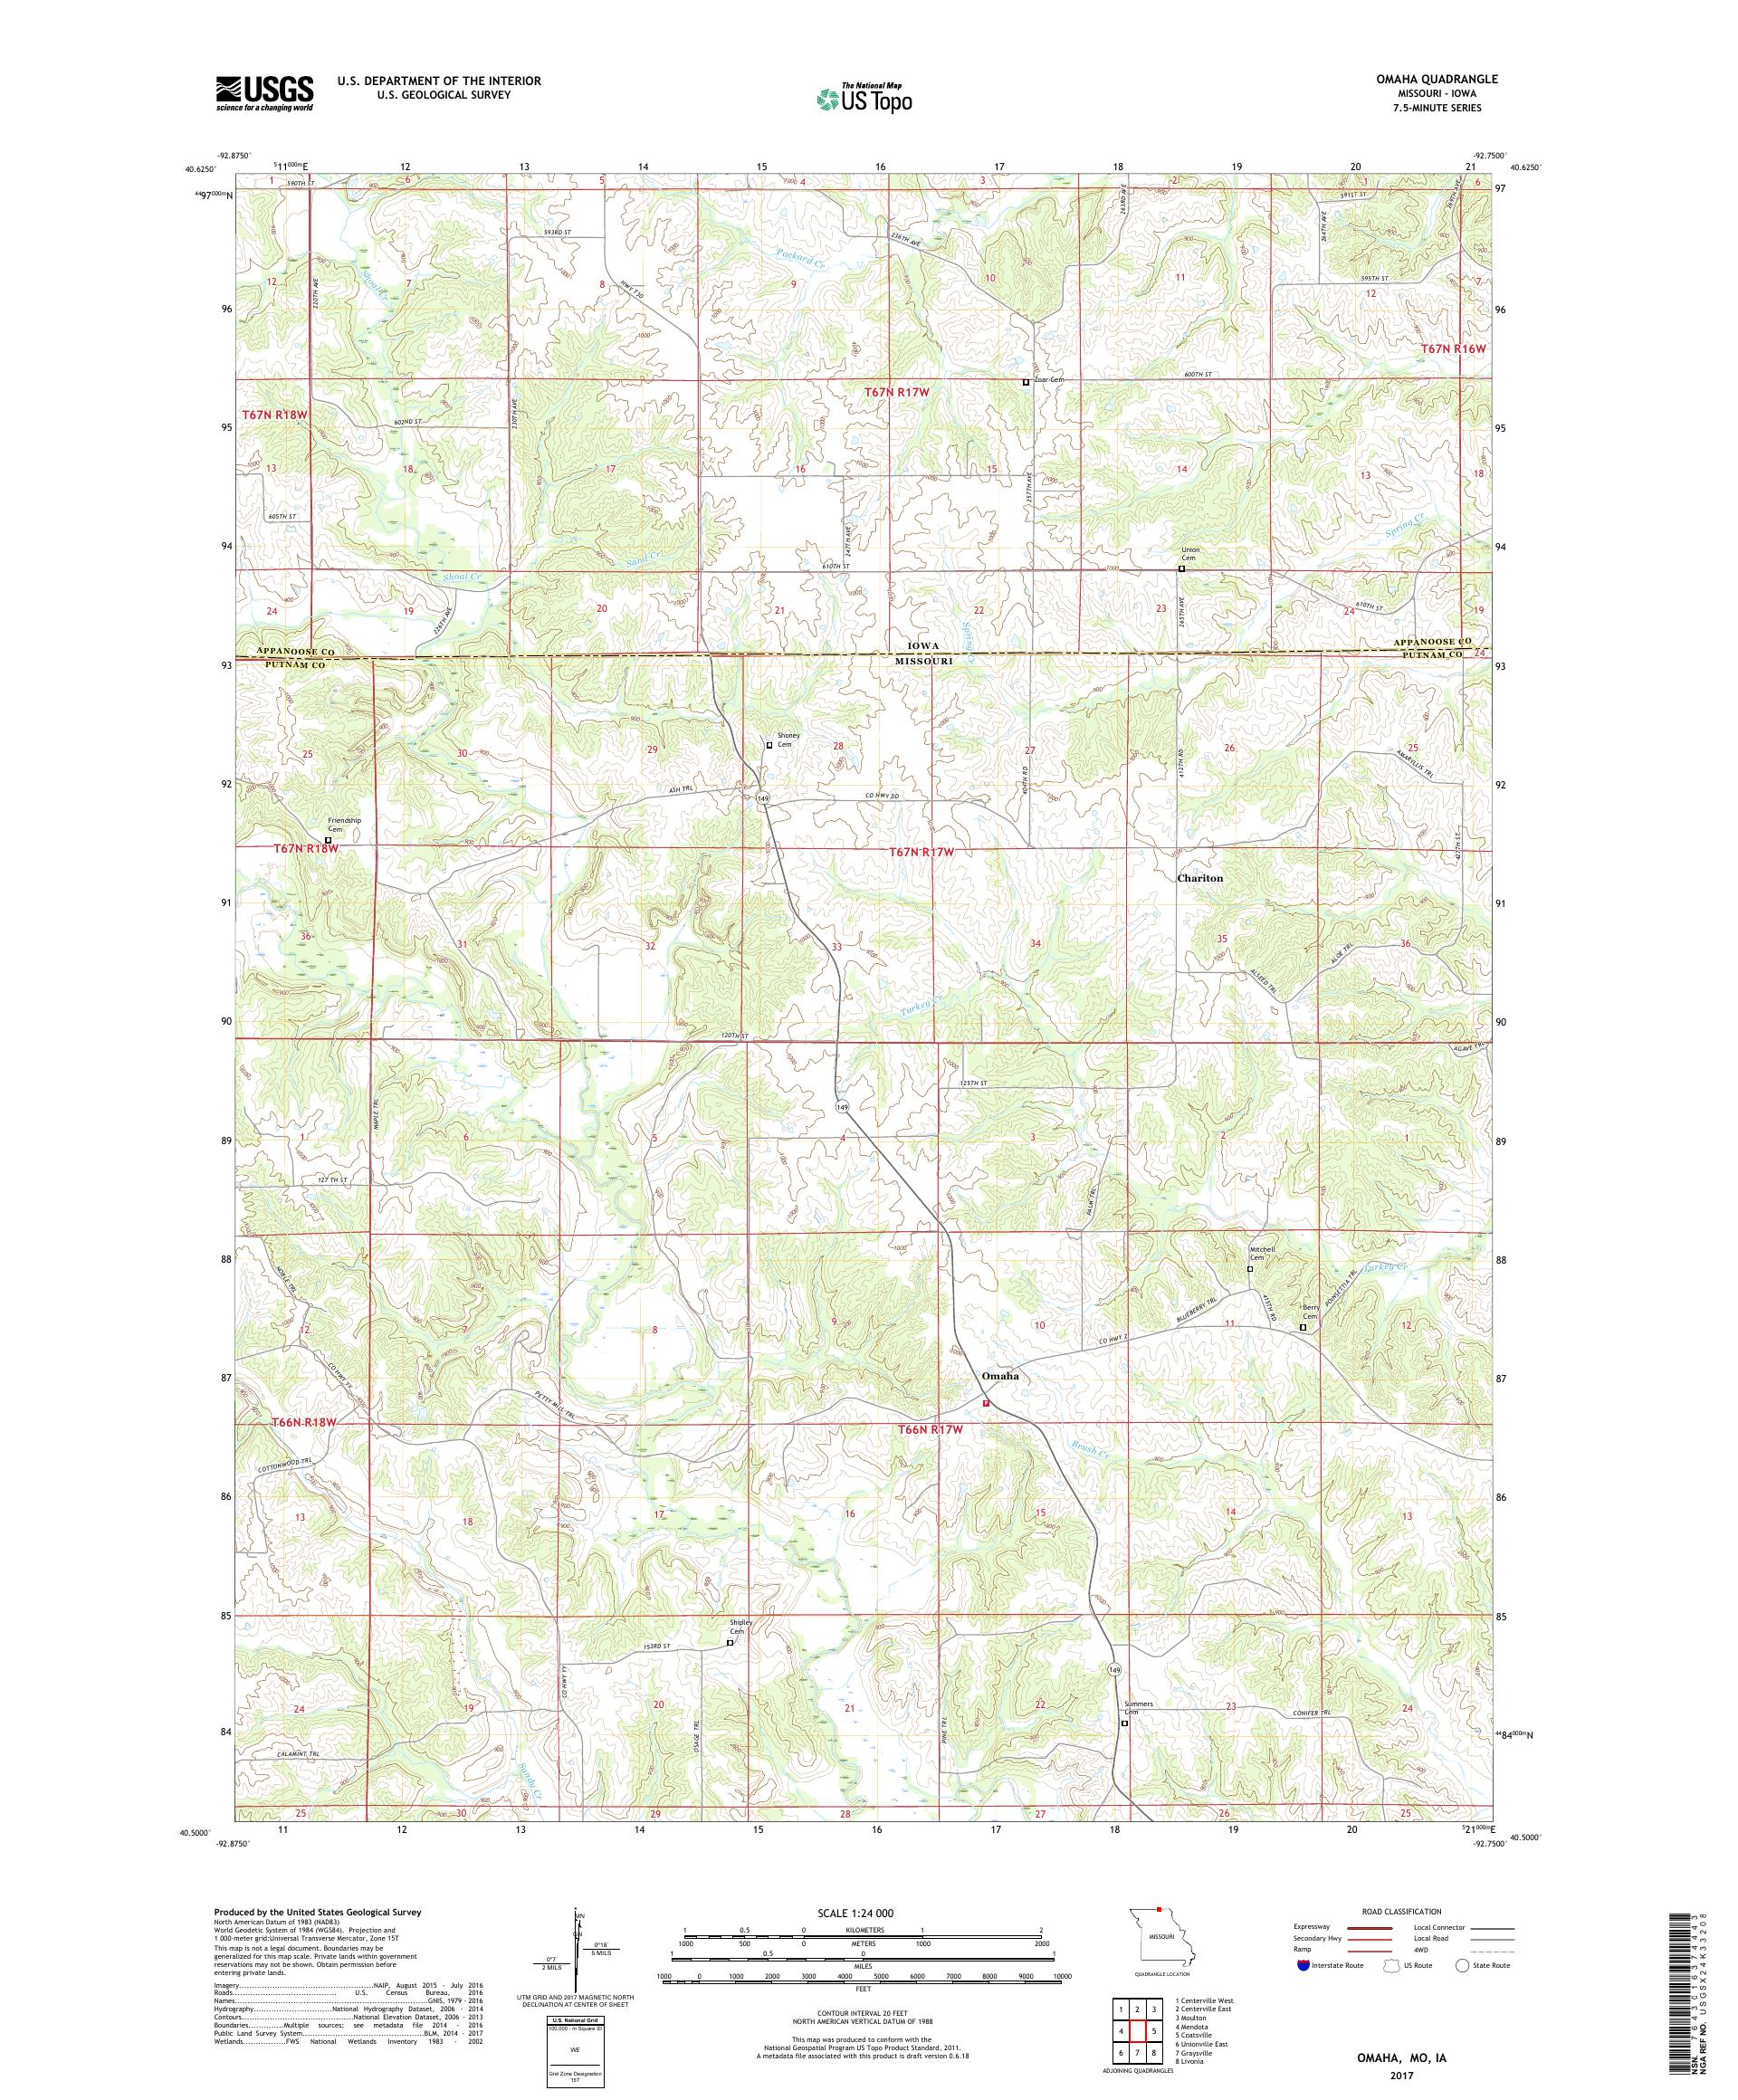 Mytopo Omaha Missouri Usgs Quad Topo Map - Omaha-on-us-map